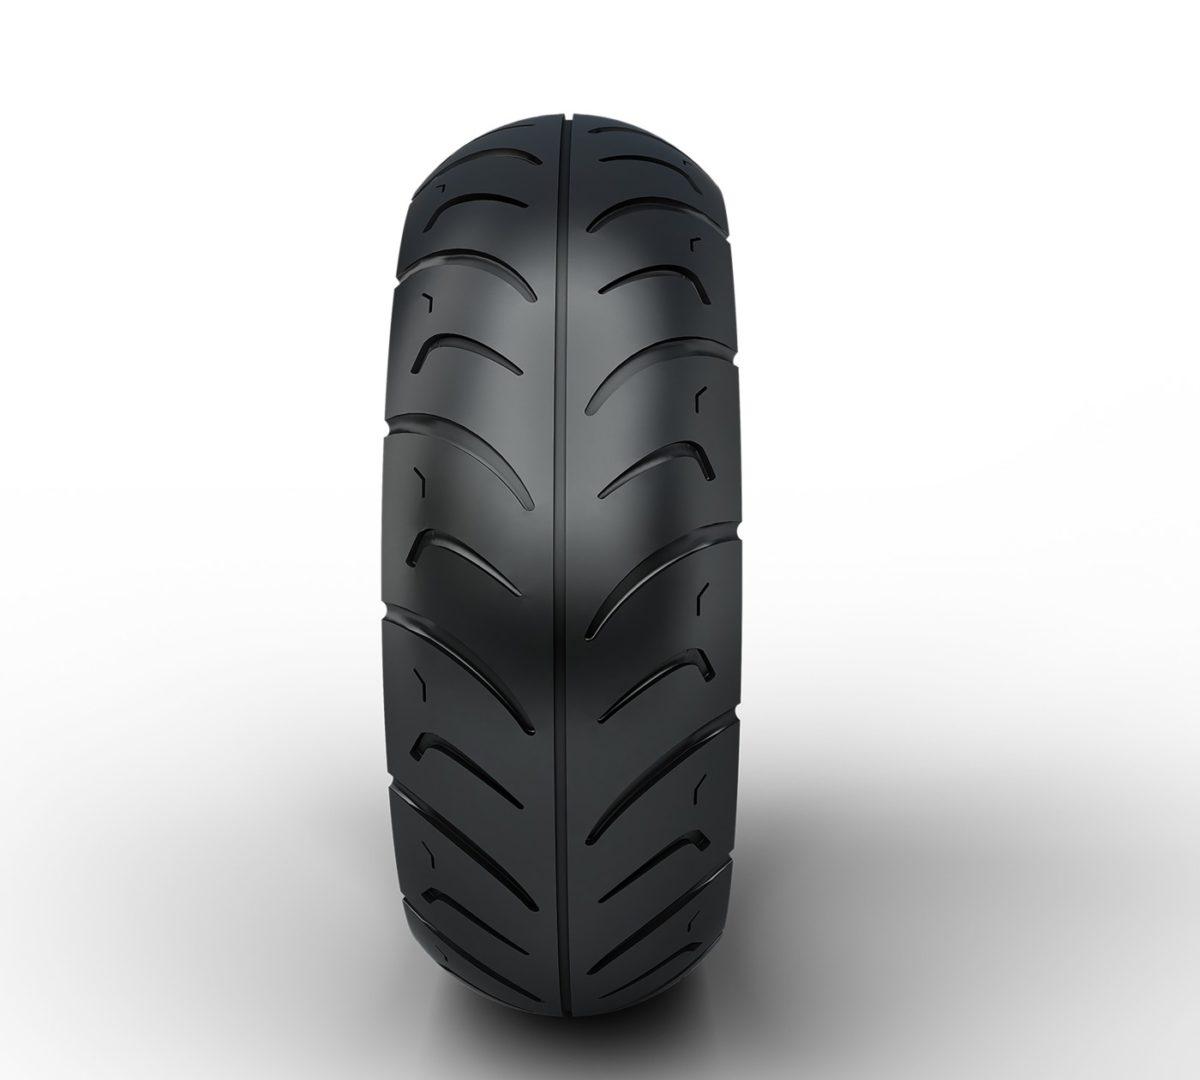 Maxxis electric scooter tyre (1)